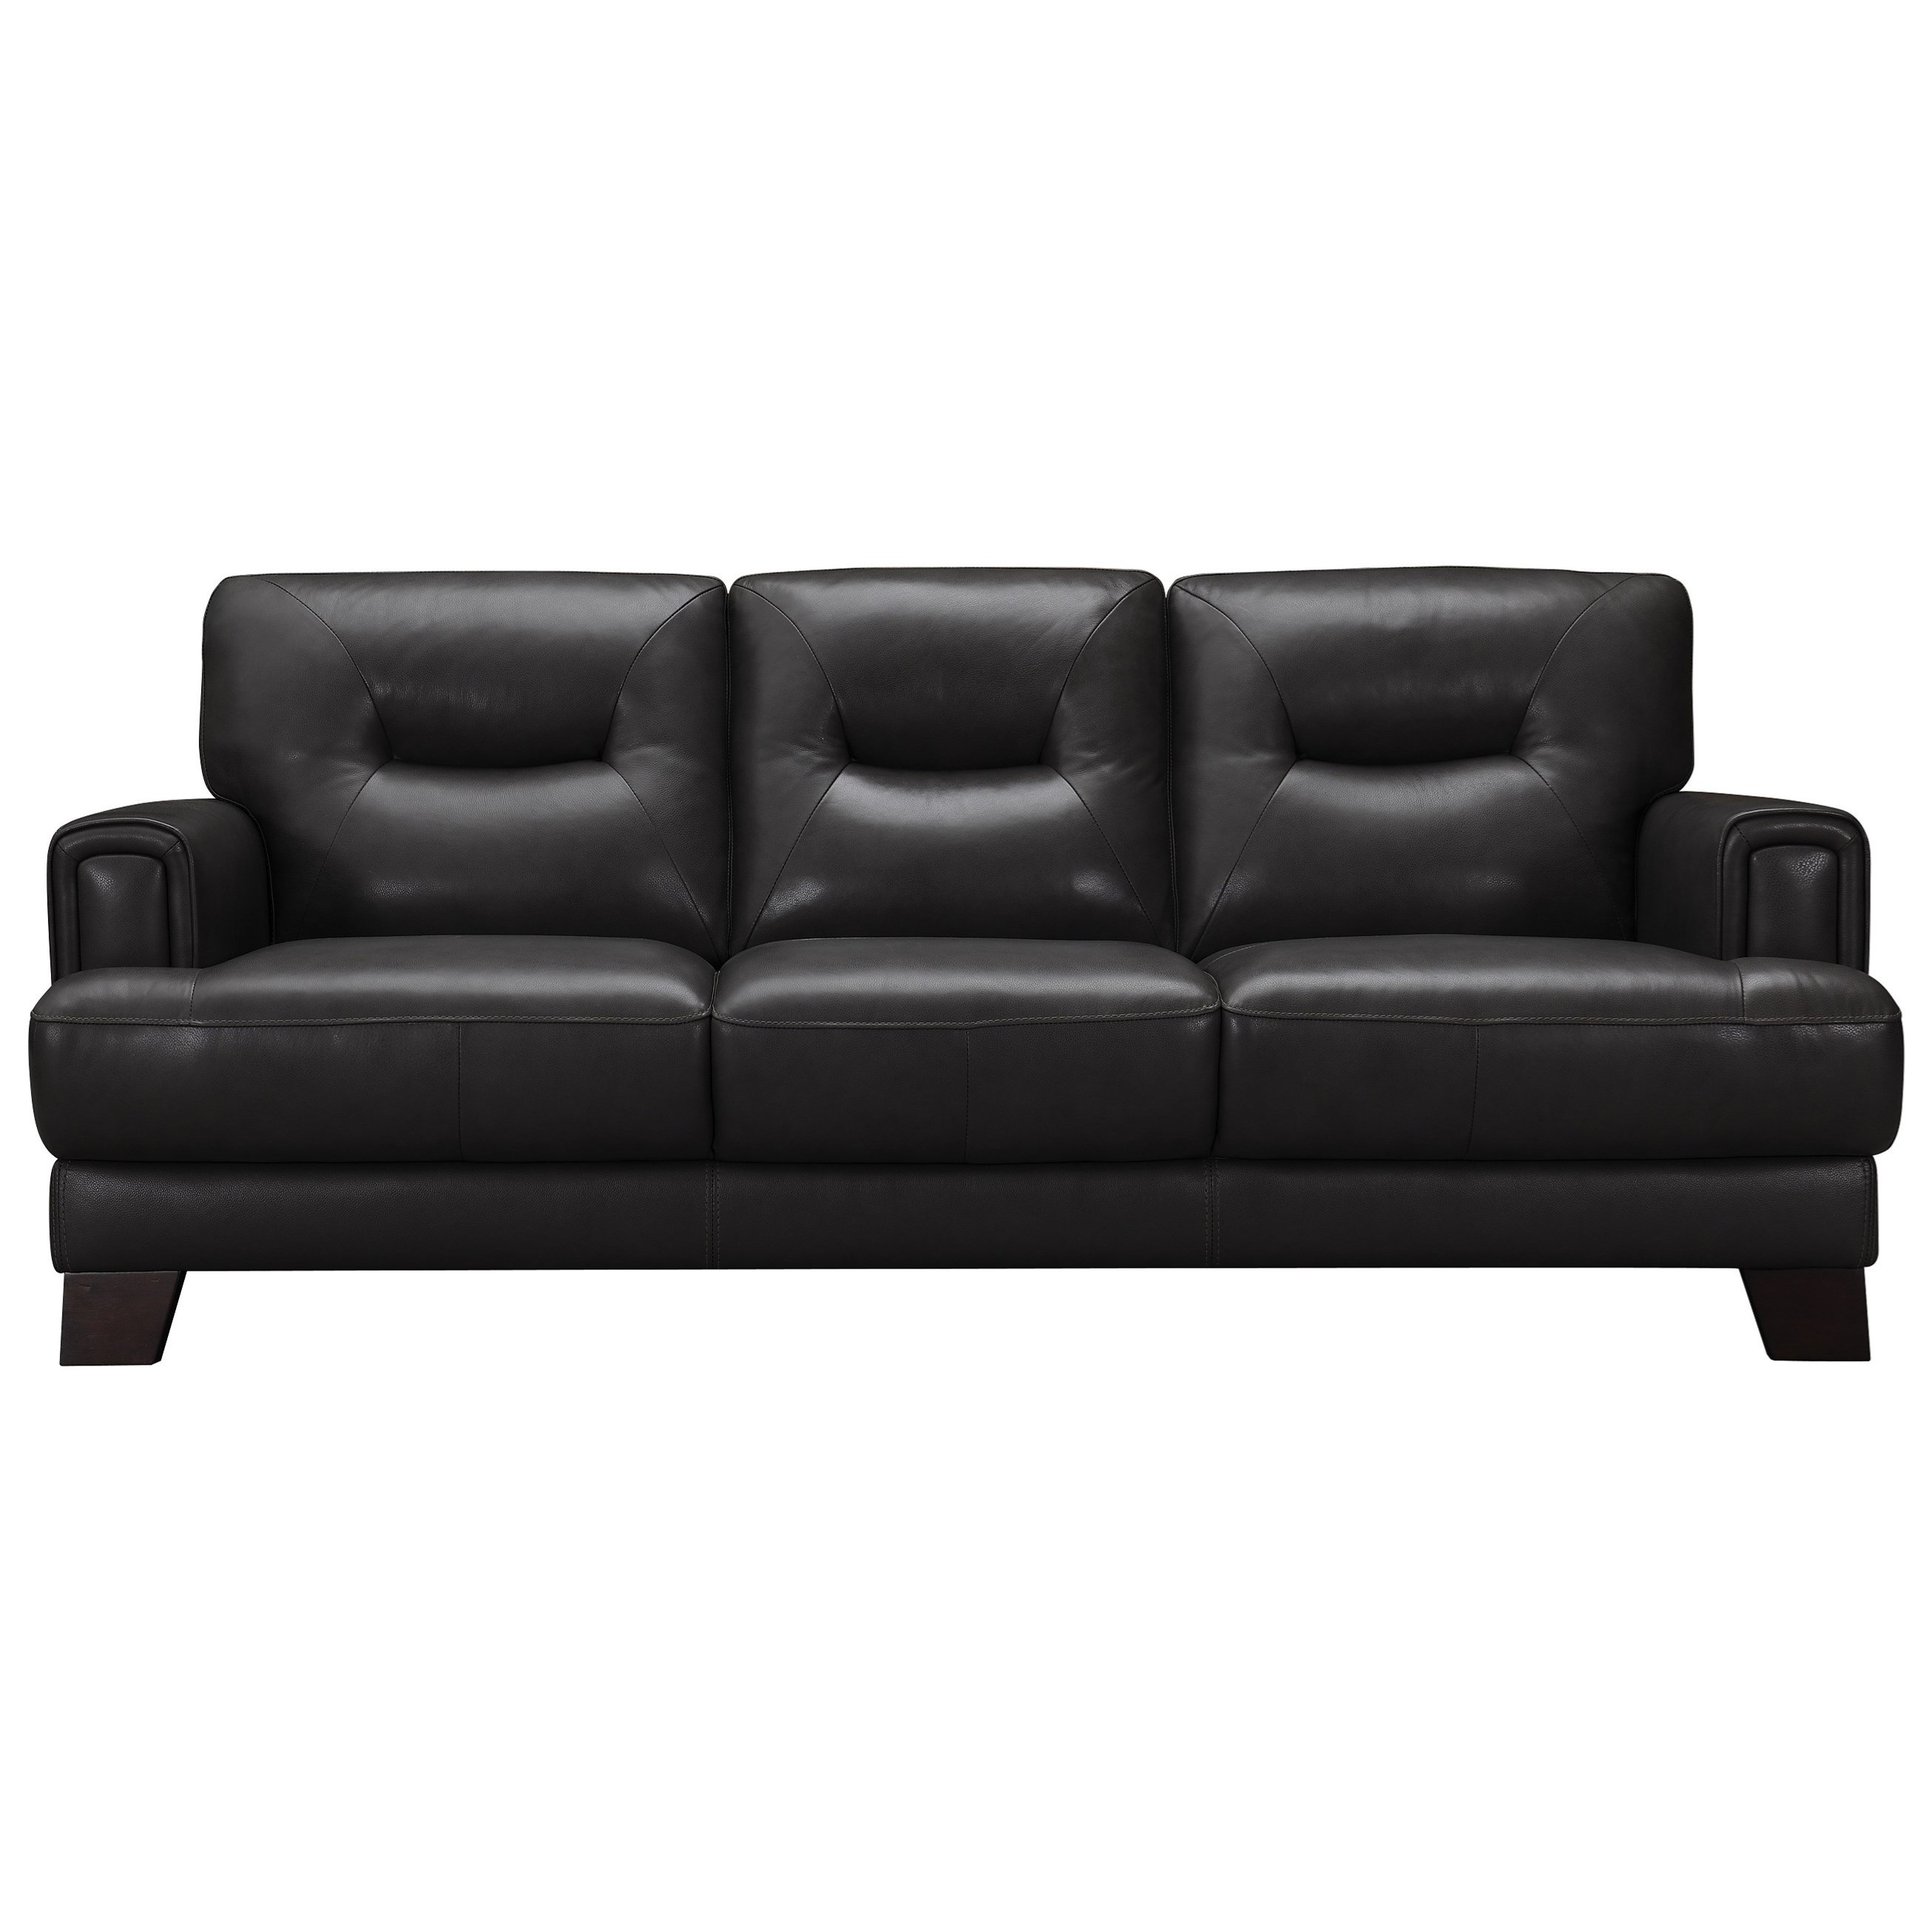 31978 Sofa by Violino at Furniture Superstore - Rochester, MN